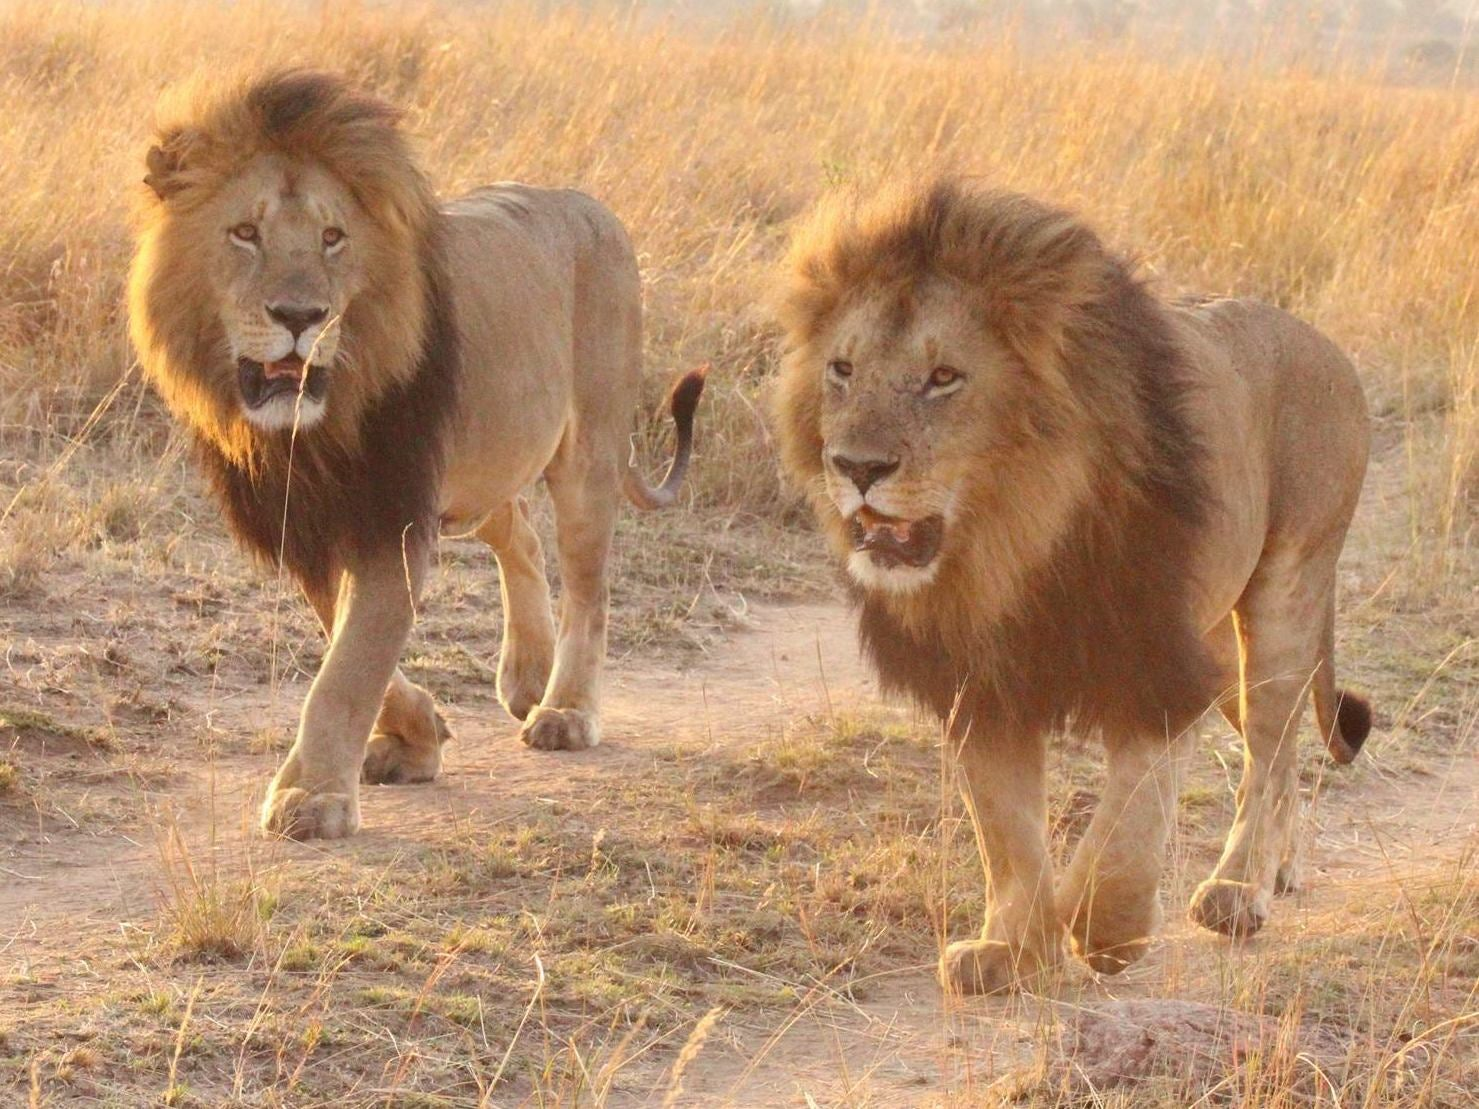 Lions - latest news, breaking stories and comment - The